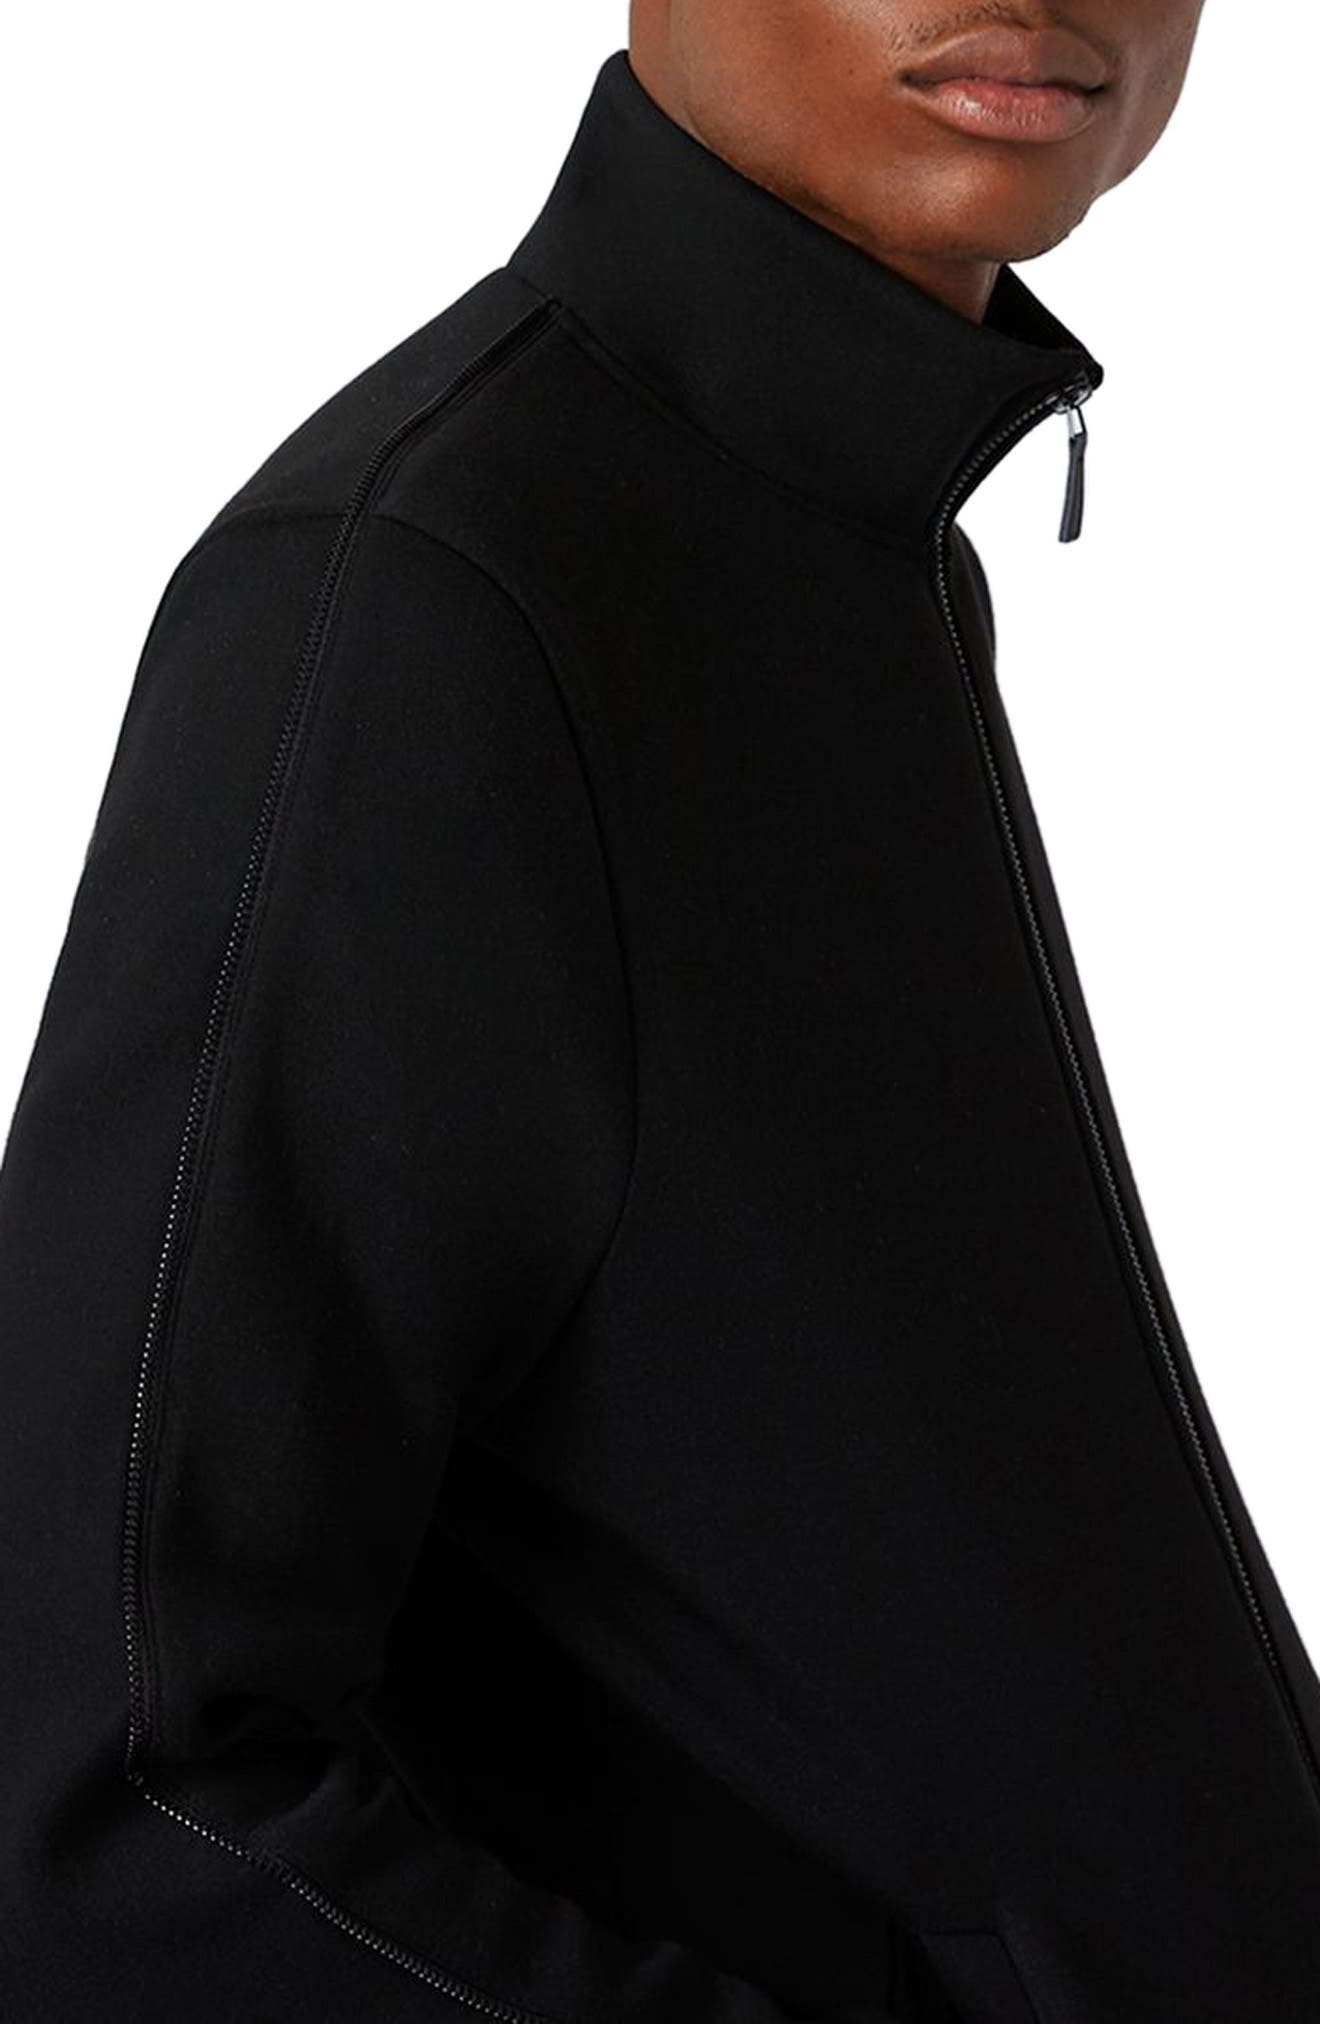 AAA Collection Zip Track Jacket,                             Alternate thumbnail 3, color,                             001